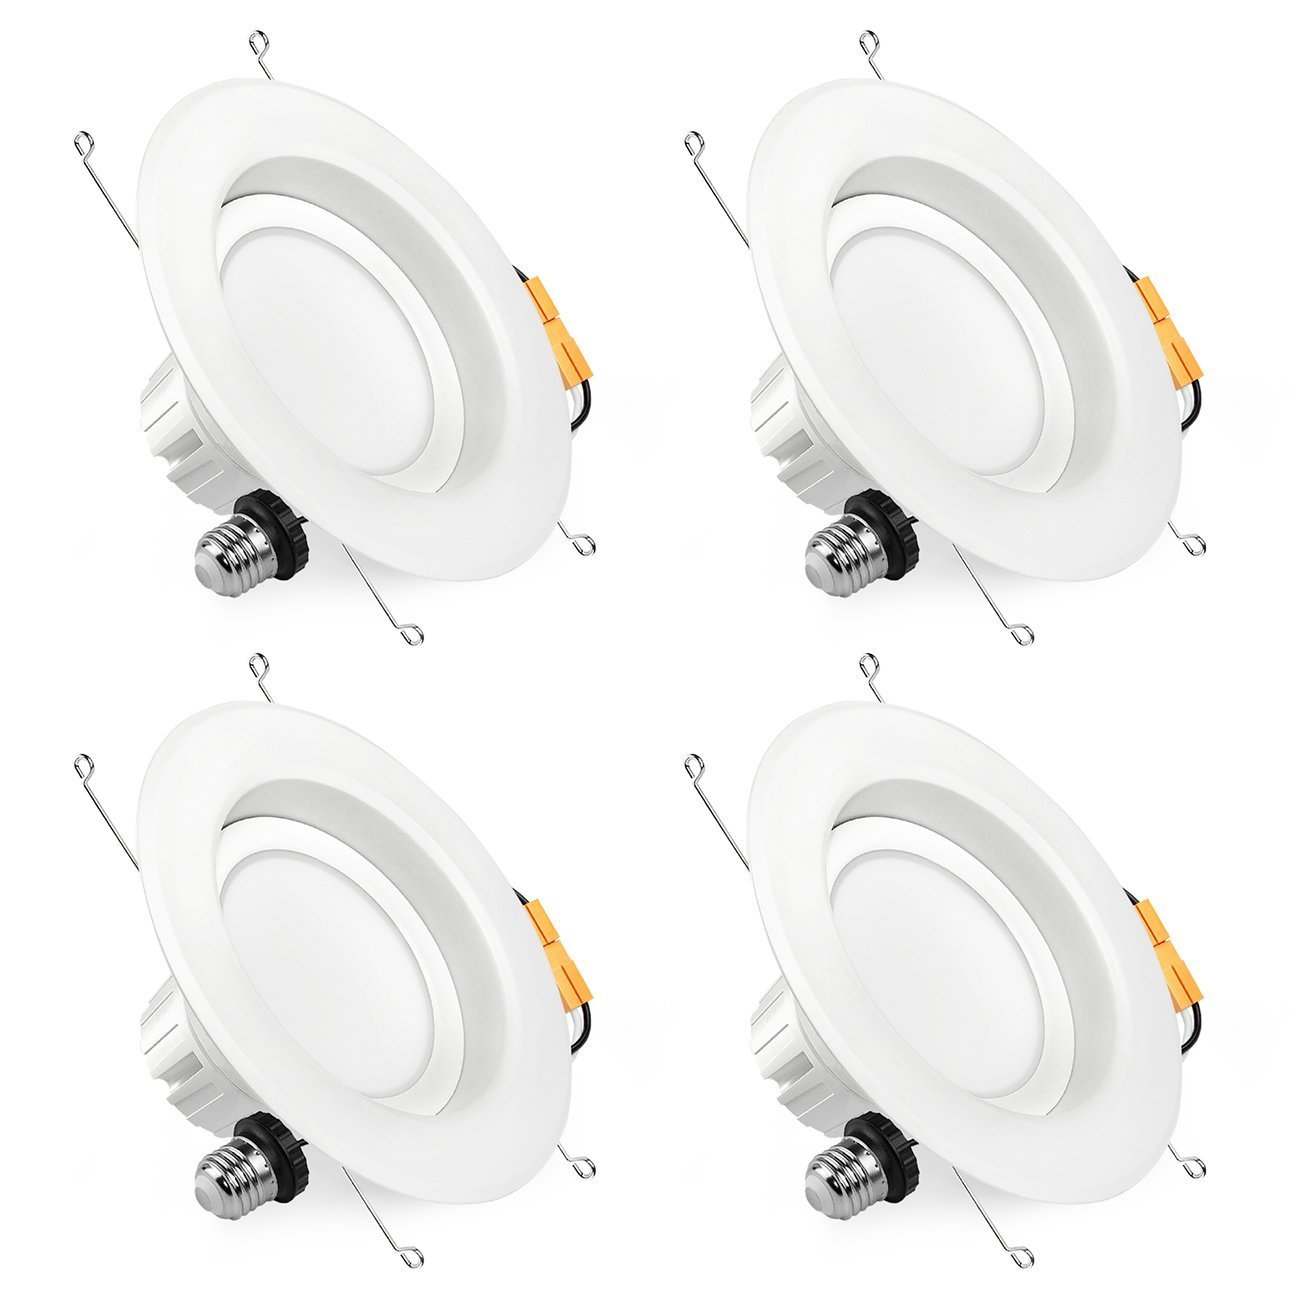 SGL 6 Inch Dimmable LED Downlight, 13W (100W Replacement), 5000K Daylight White, 1100 Lm, Retrofit LED Recessed Lighting Fixture, LED Ceiling Light, 4-Pack